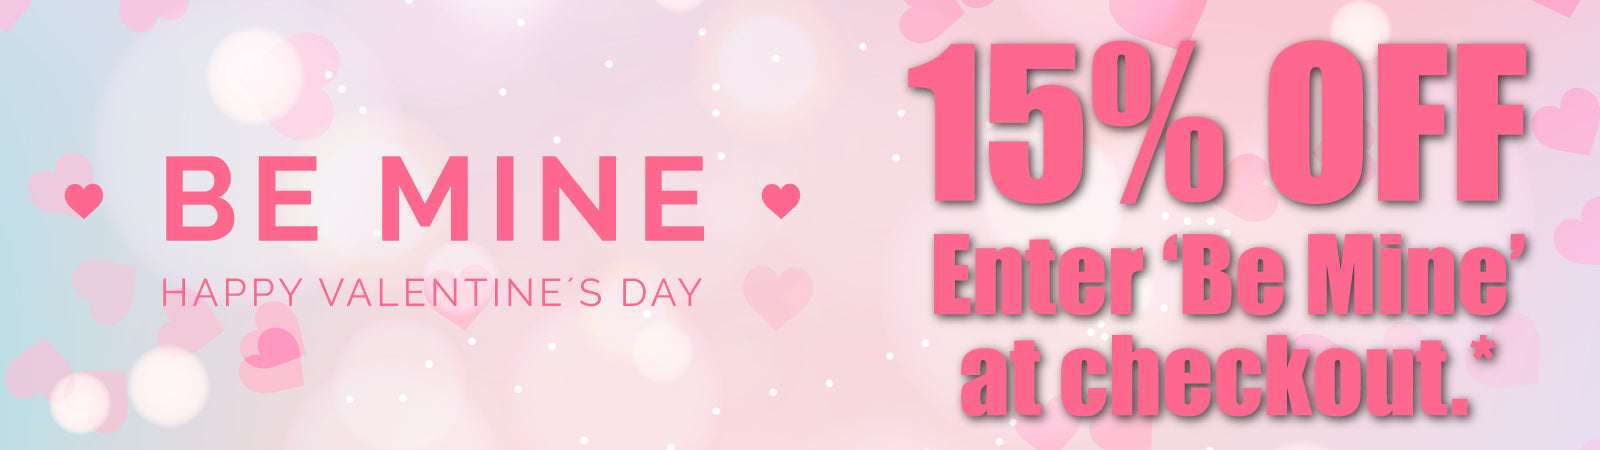 Enter Be Mine at checkout for 15% our valentines collection